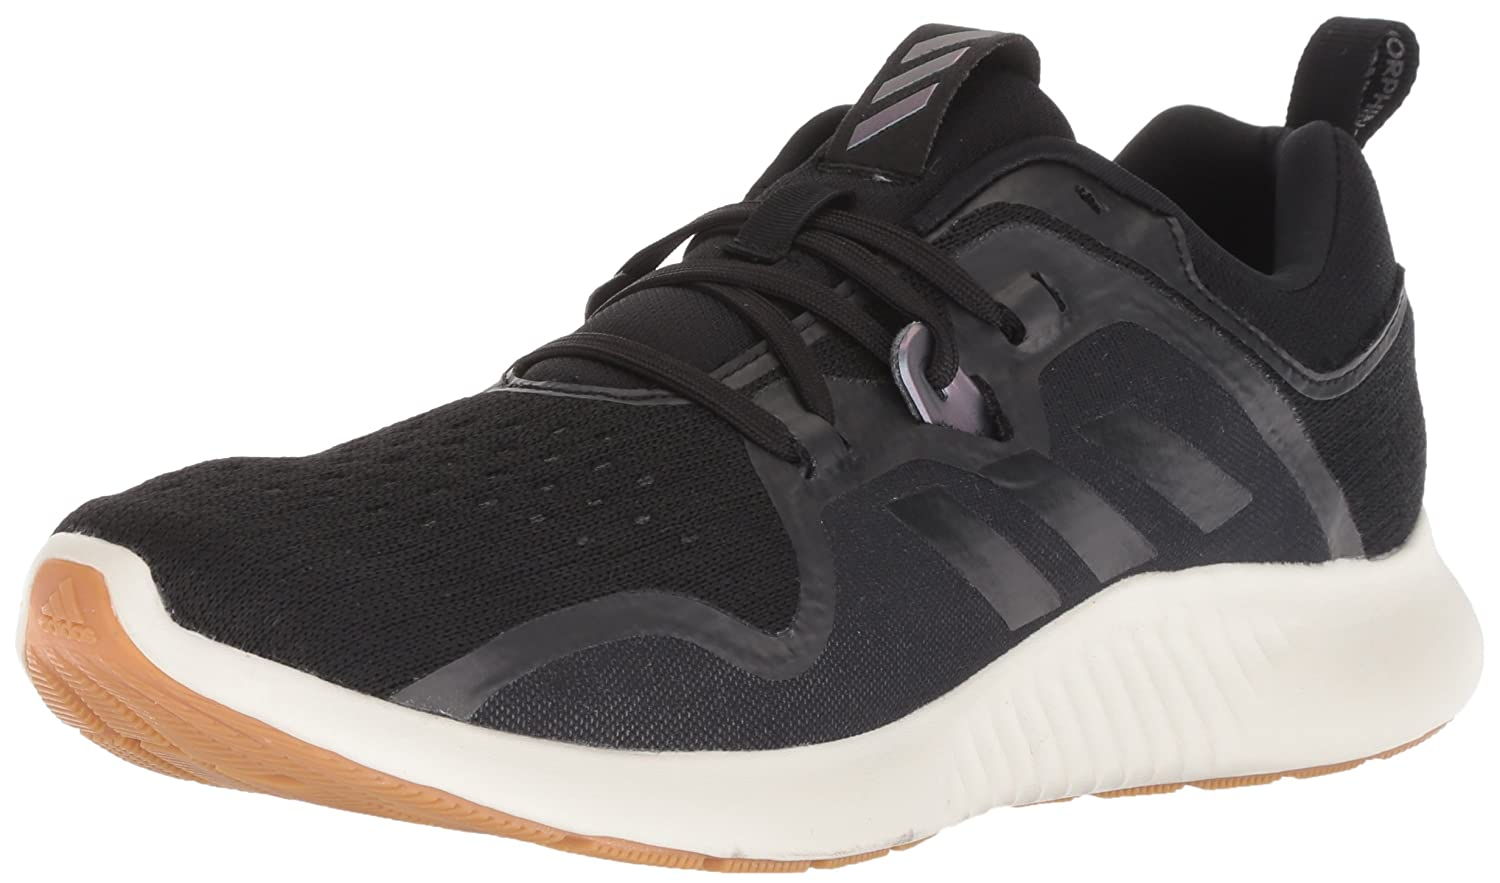 adidas Originals Women's Edgebounce Running Shoe B077XMK55H 10 B(M) US|Black/Black/Night Metallic